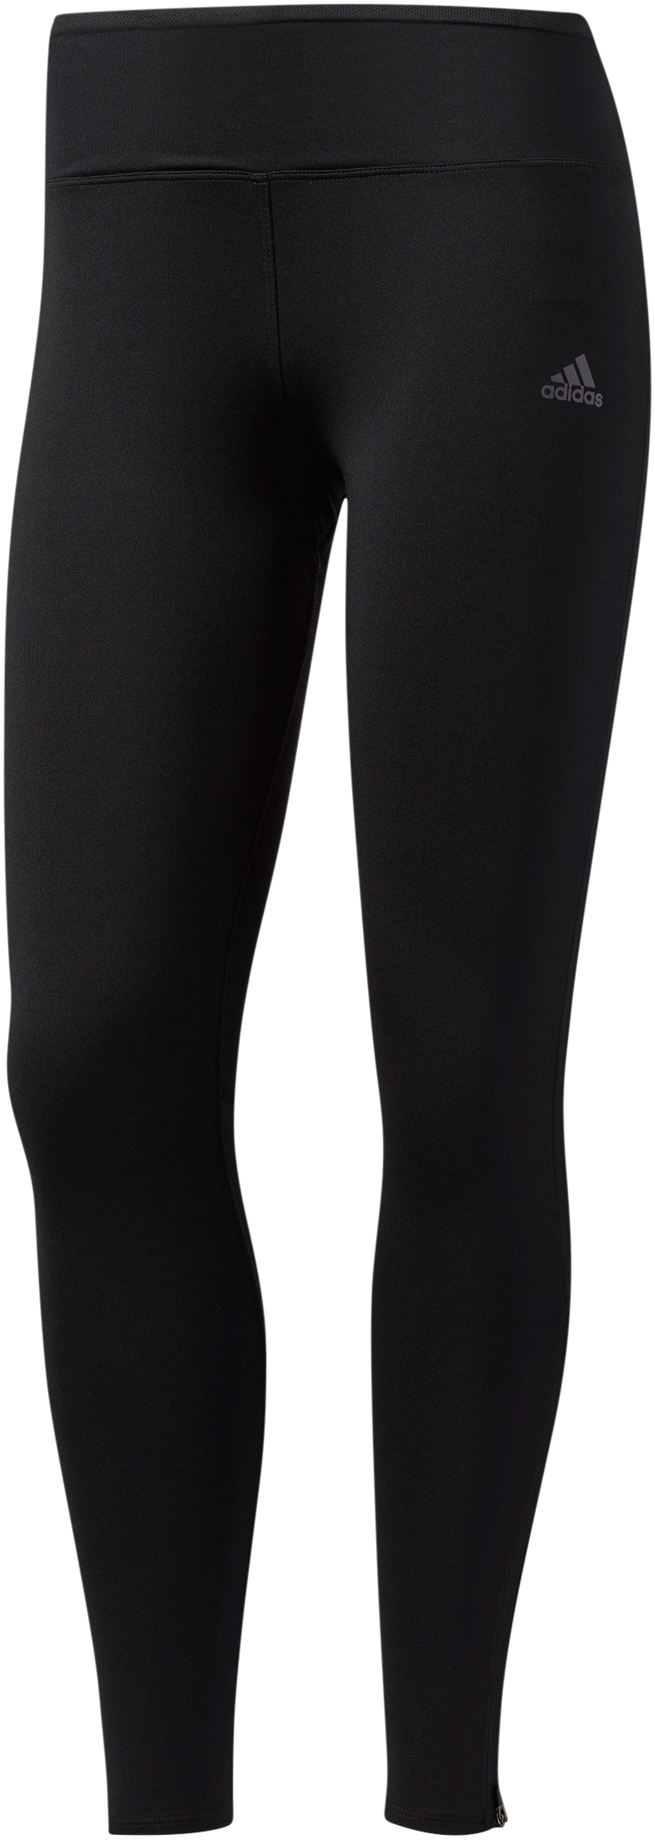 adidas Response Warm Tights - Dame | Trousers